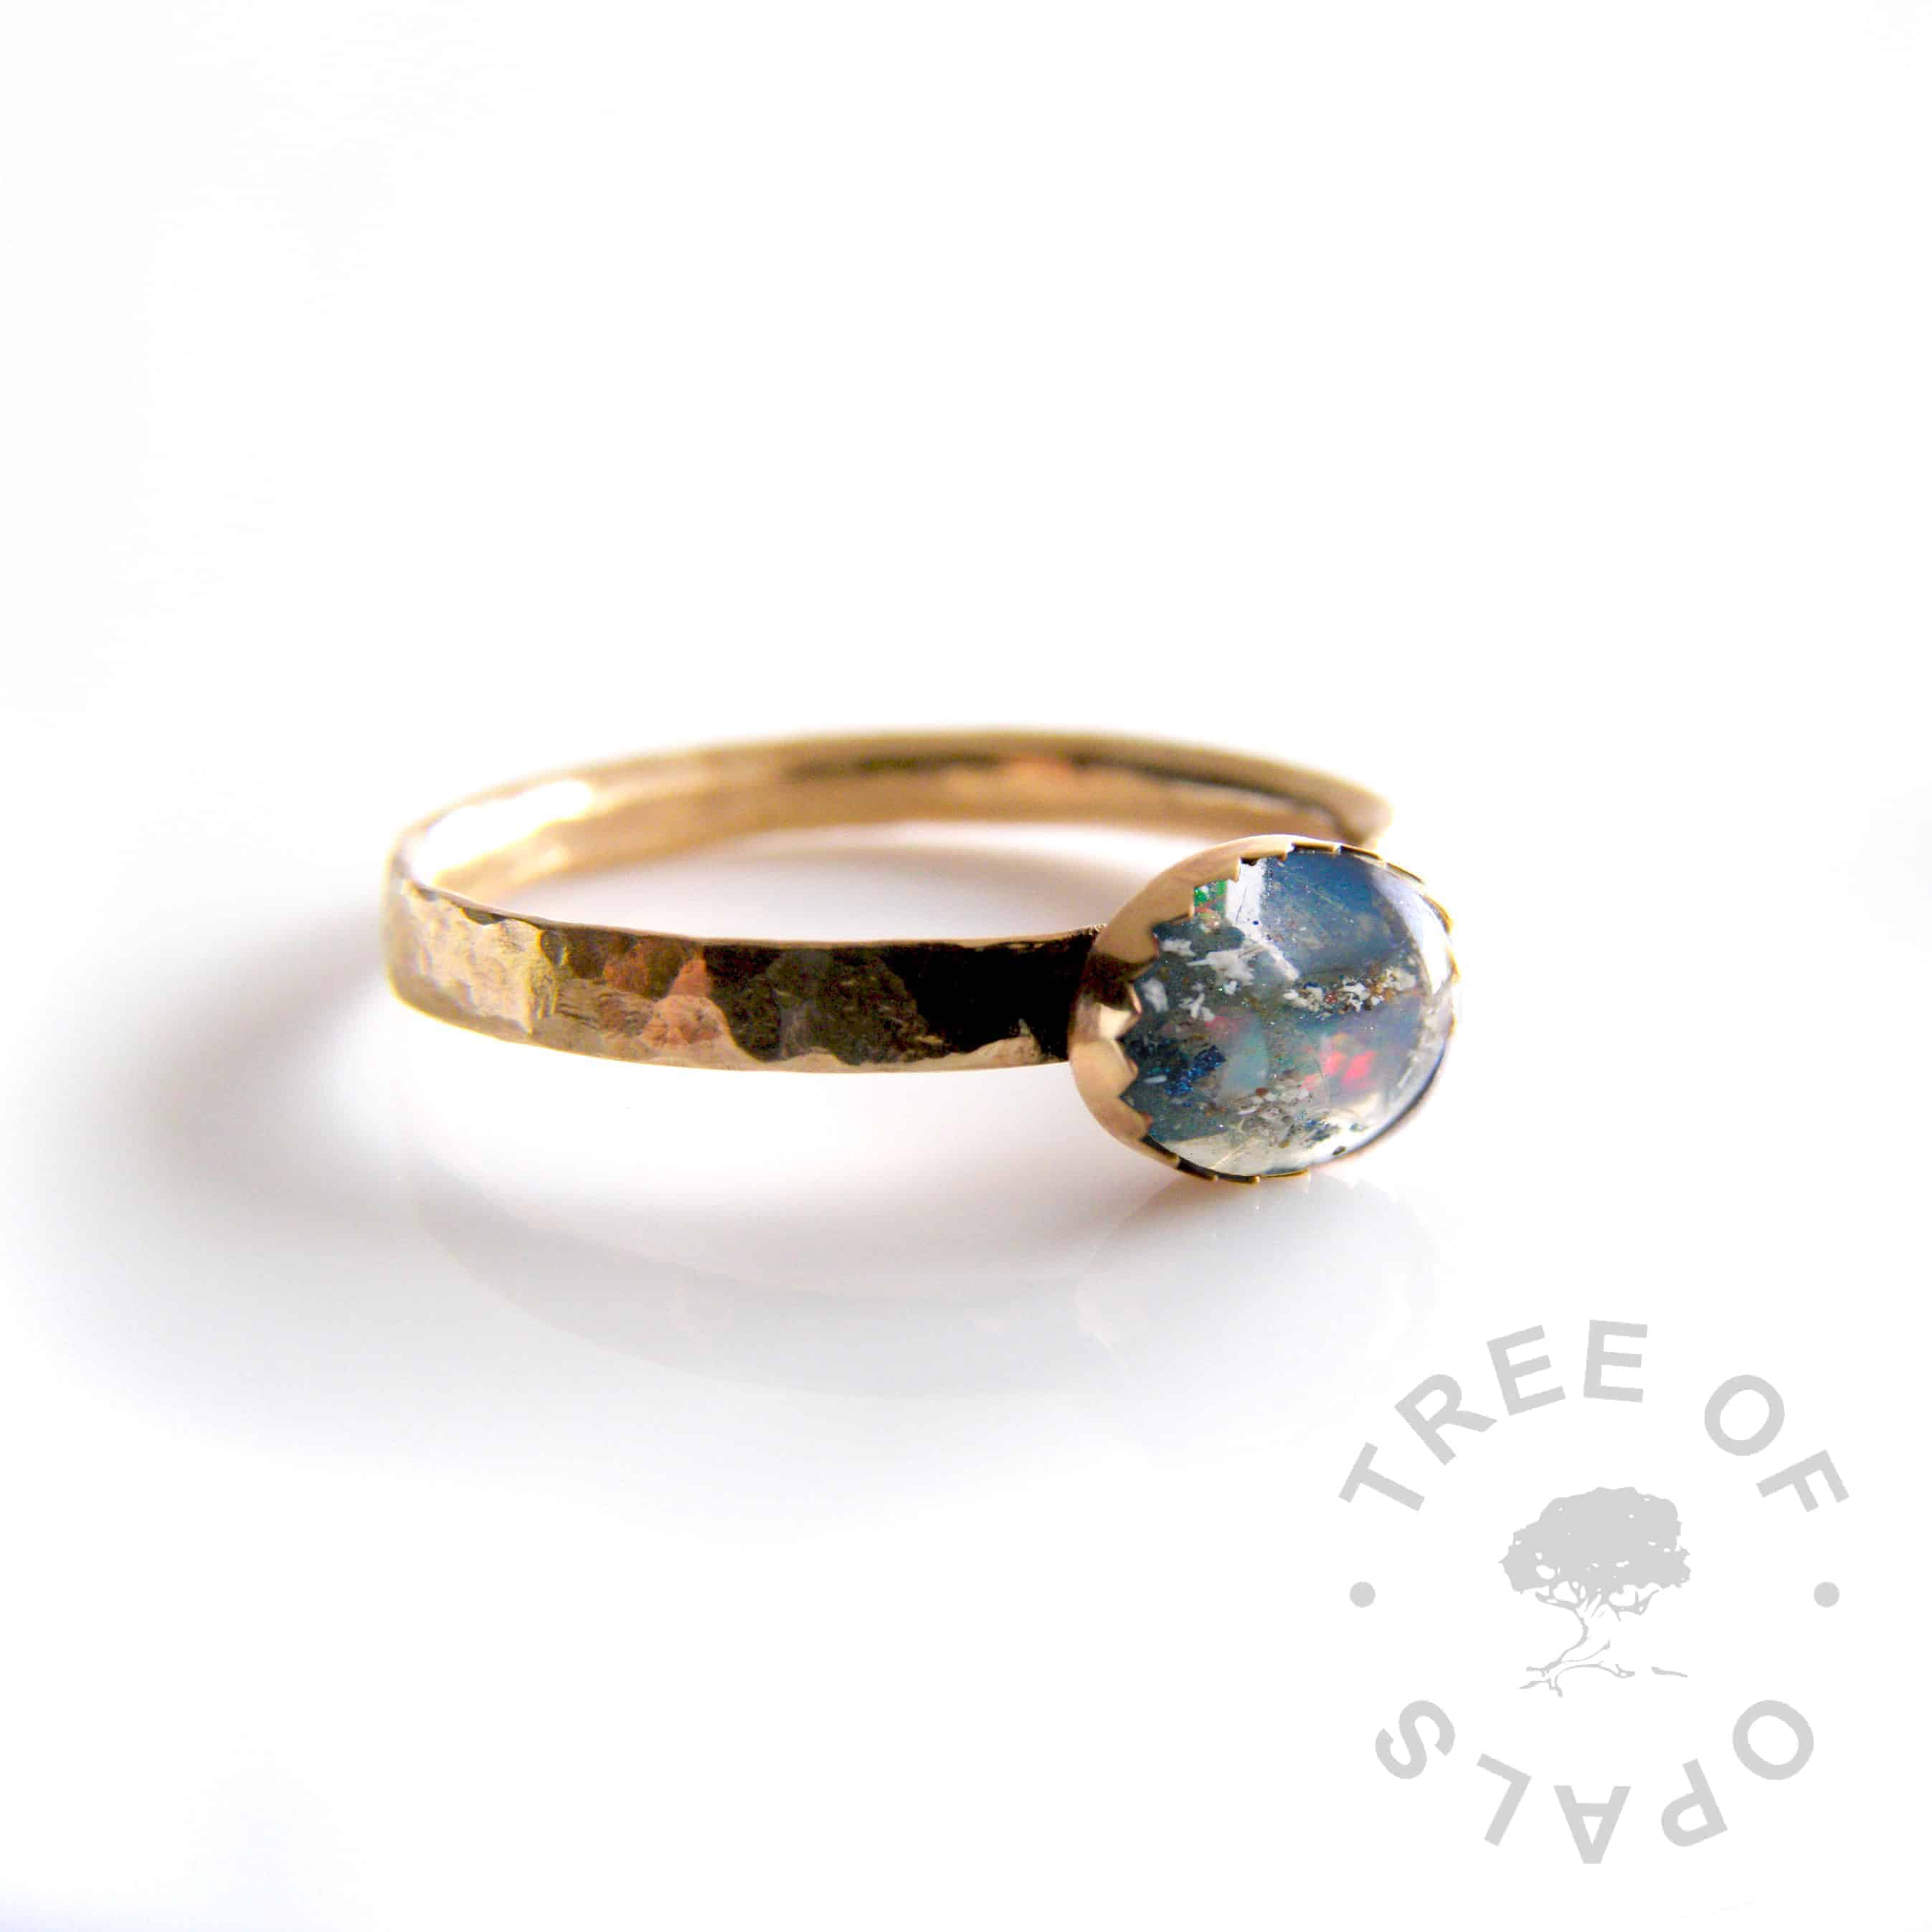 (mockup) solid 14ct yellow gold cremation ash ring with genuine opal flakes and Aegean blue shimmer, textured comfort fit band and serrated 8x6mm cabochon handmade by goldsmith Nic Kamminga, hallmarked with our maker's mark at the Birmingham Assay Office